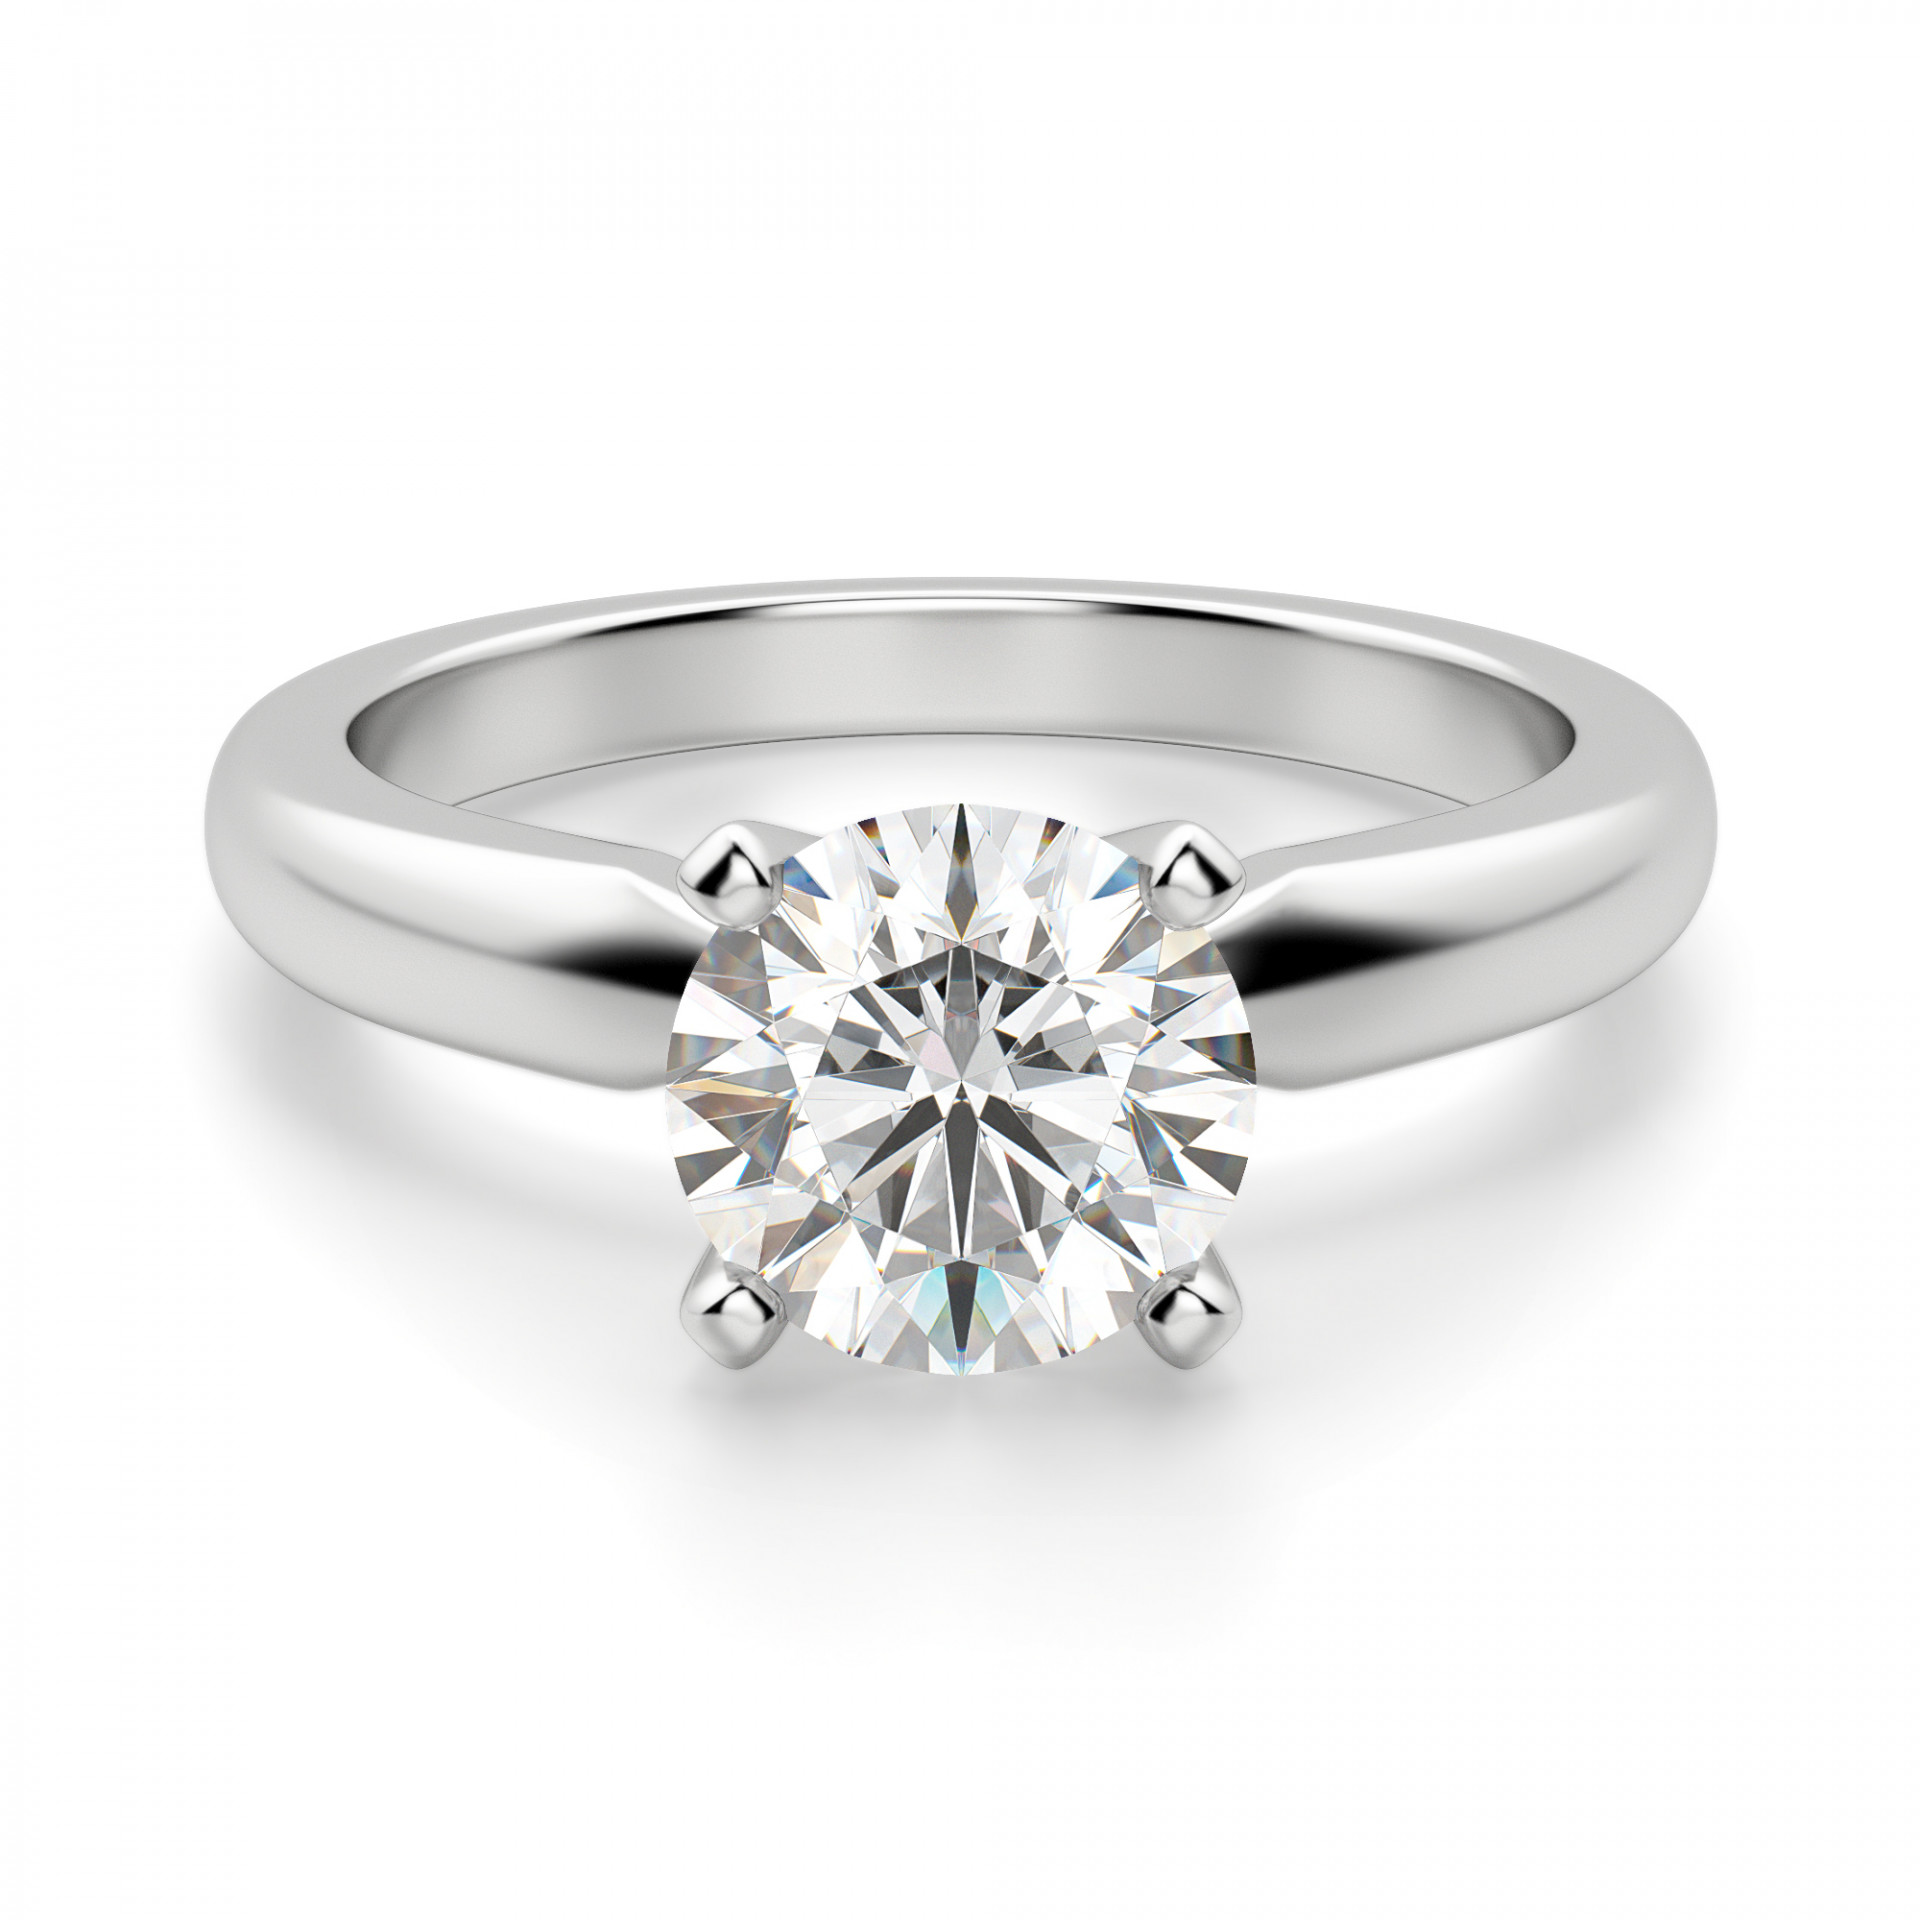 Tiffany Wedding Rings.Tiffany Style Solitaire With 1 03 Carat Round Brilliant Center